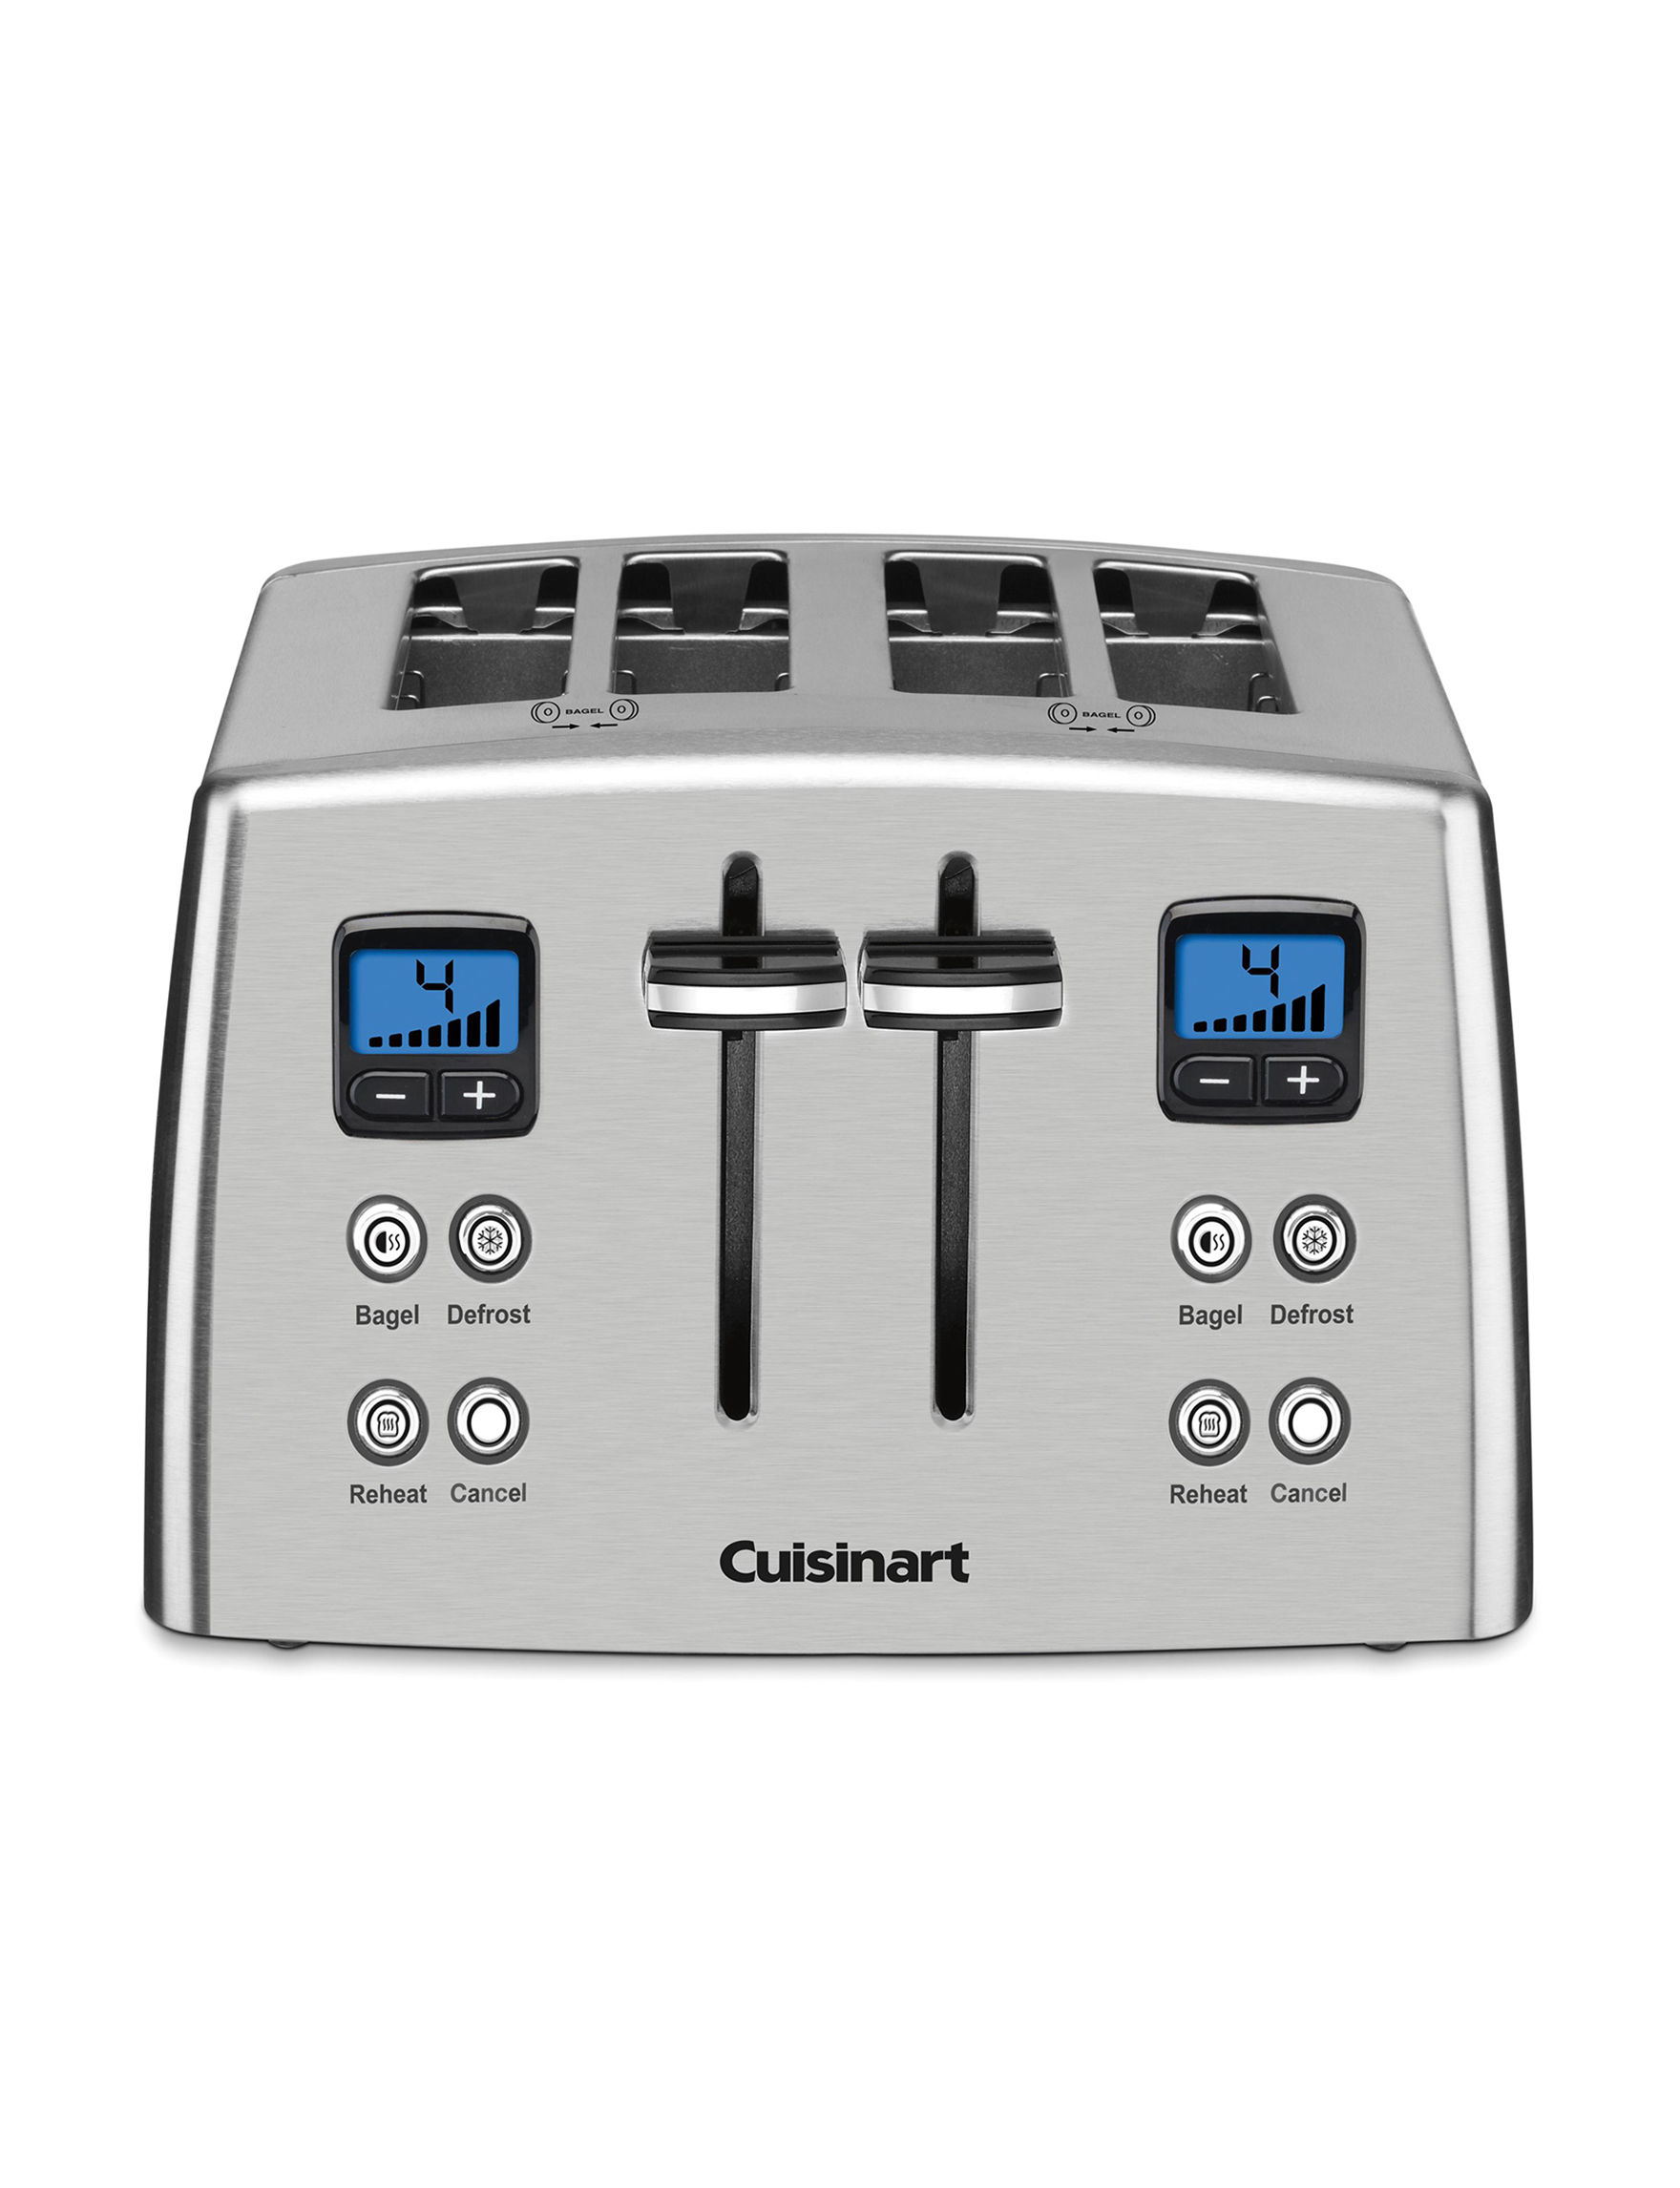 Cuisinart Stainless Toasters & Toaster Ovens Kitchen Appliances